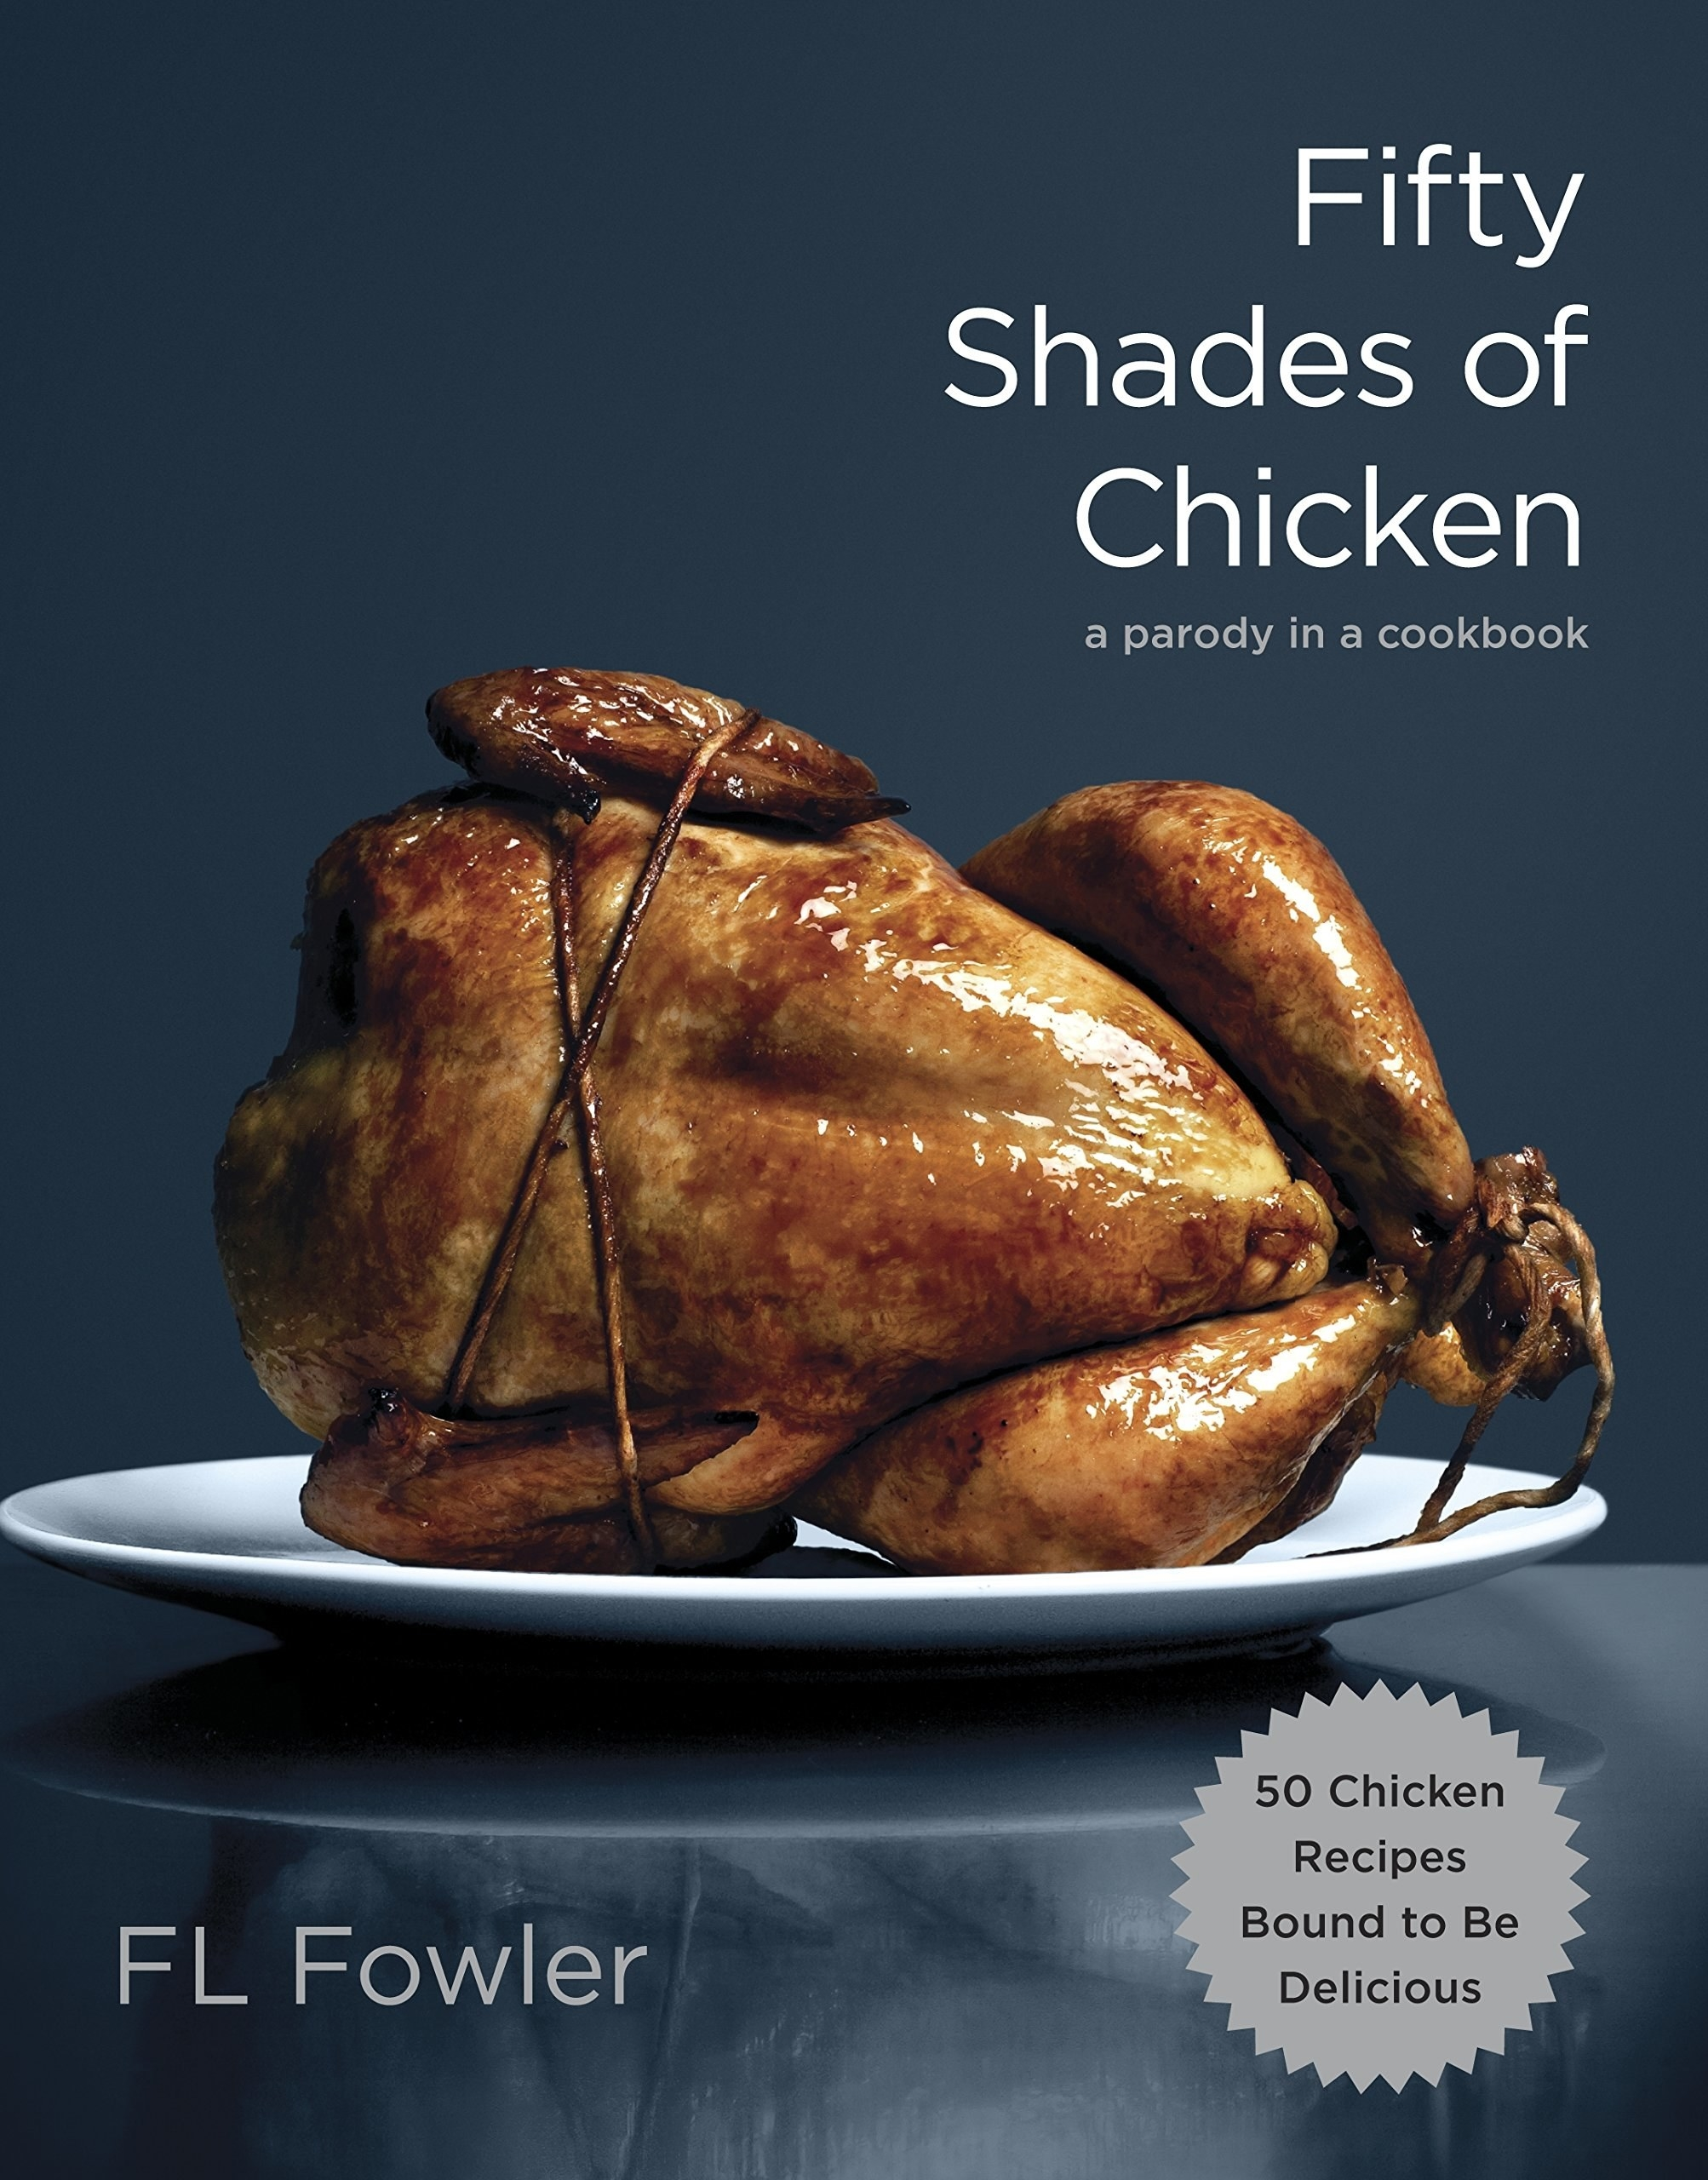 the cover, showing a chicken with its arms and feet wrapped in rope, similar to bondage